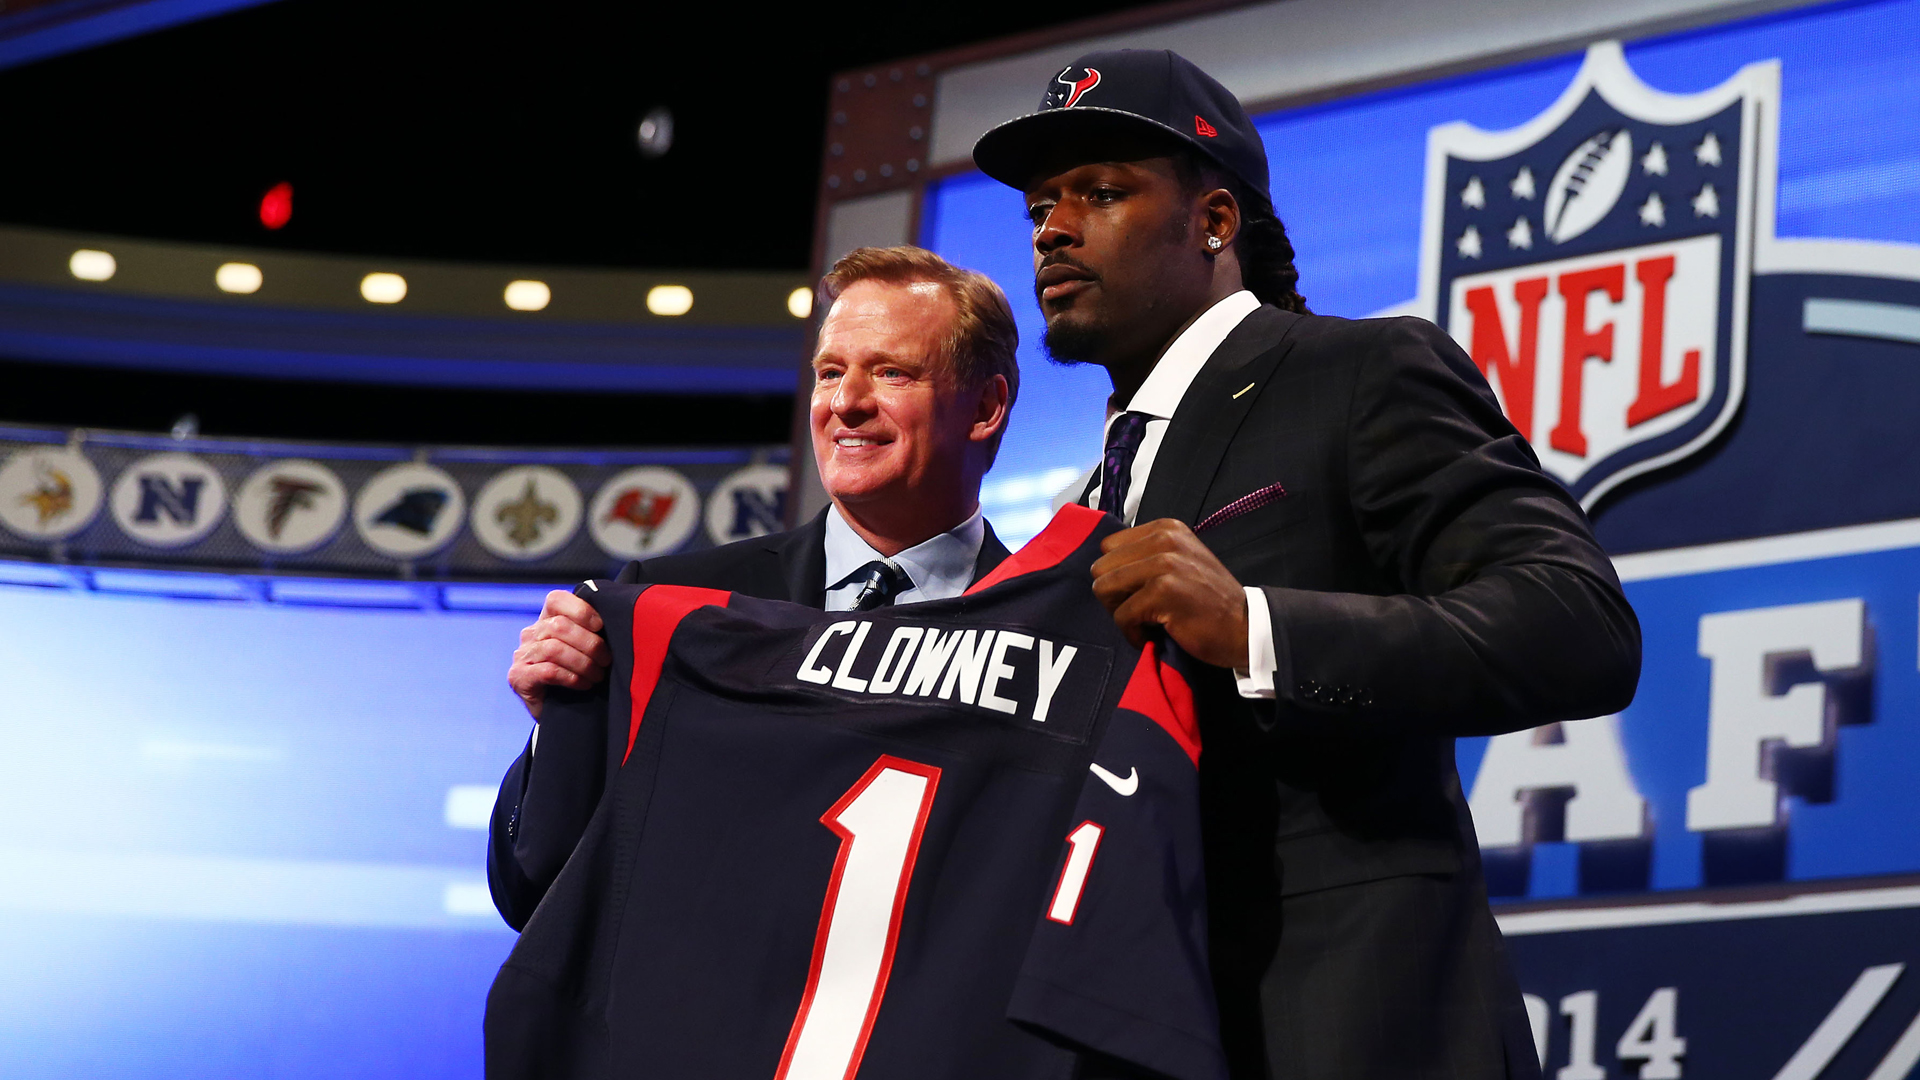 Remembering the 2014 NFL Draft in a time when No. 1 pick Jadeveon Clowney may get traded